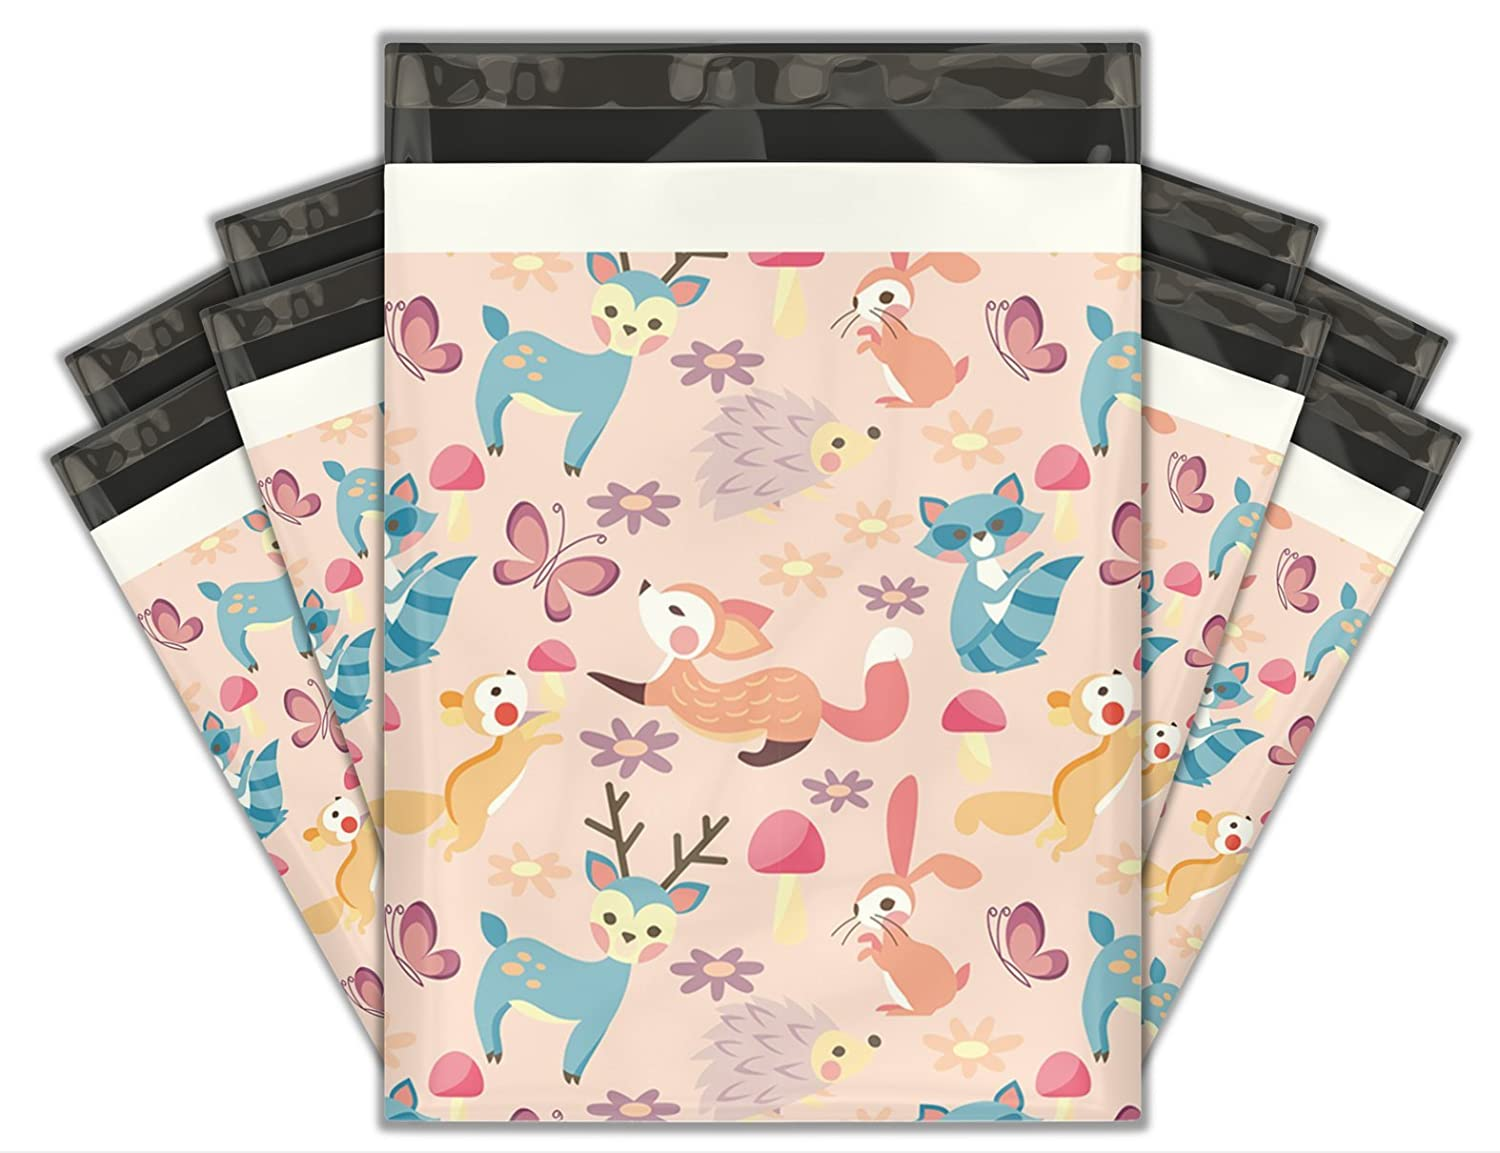 10x13 (100) Woodland Critters Designer Poly Mailers Shipping Envelopes Premium Printed Bags Pro Supply Global